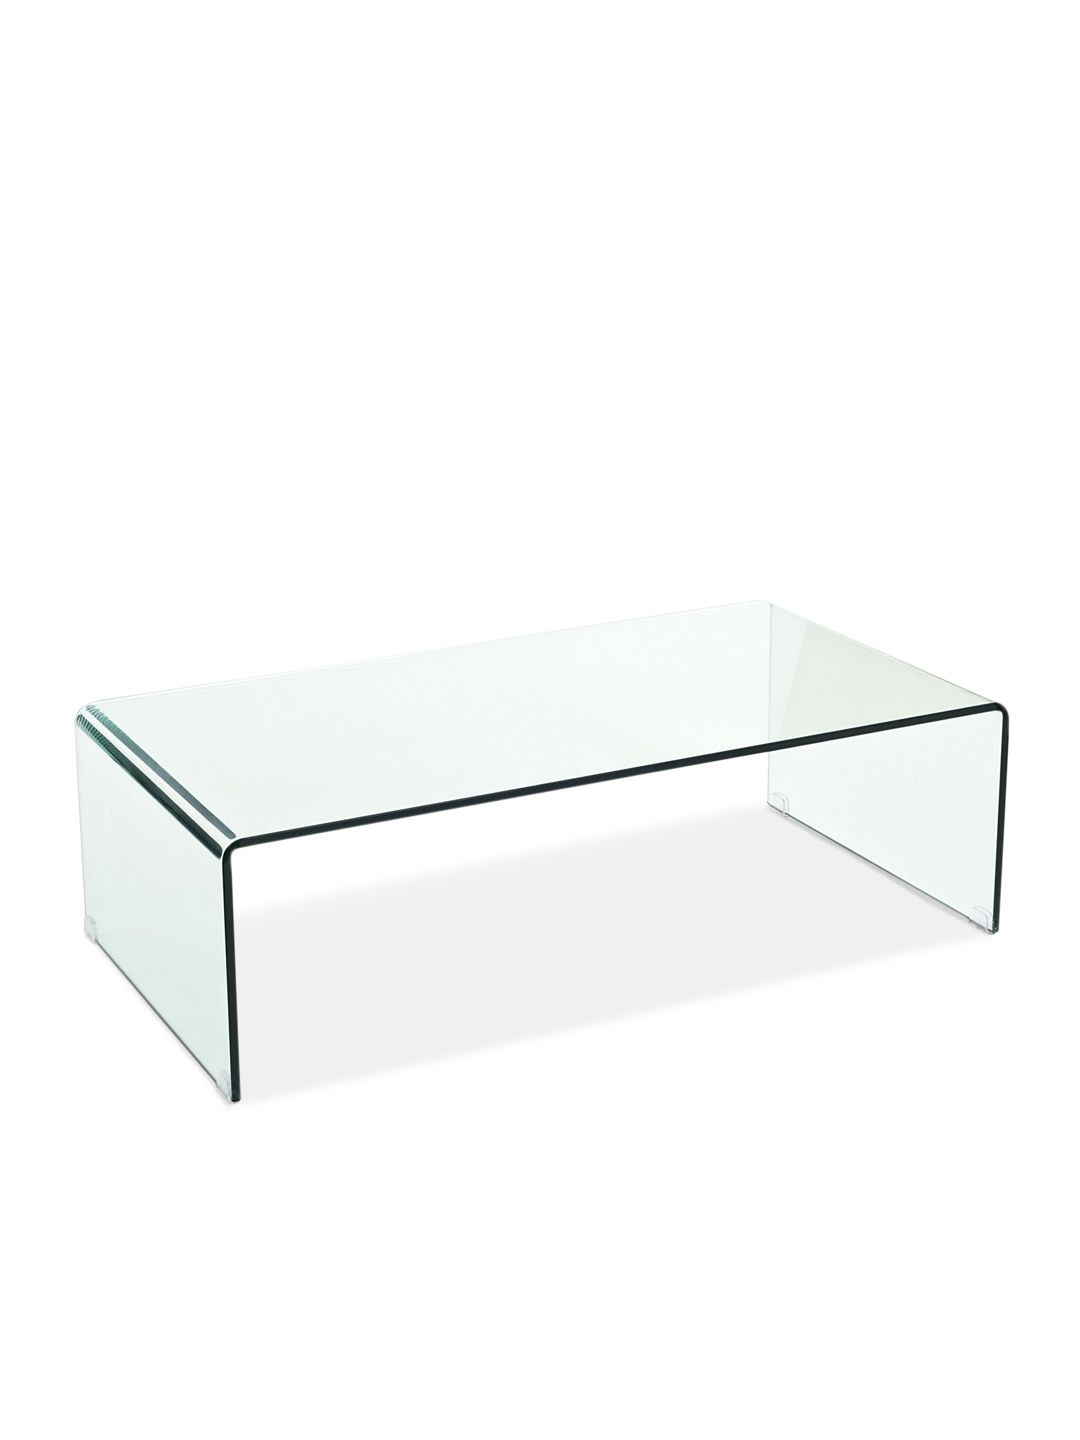 transparent coffee table by pearl river modern ny at gilt  - transparent coffee table by pearl river modern ny at gilt